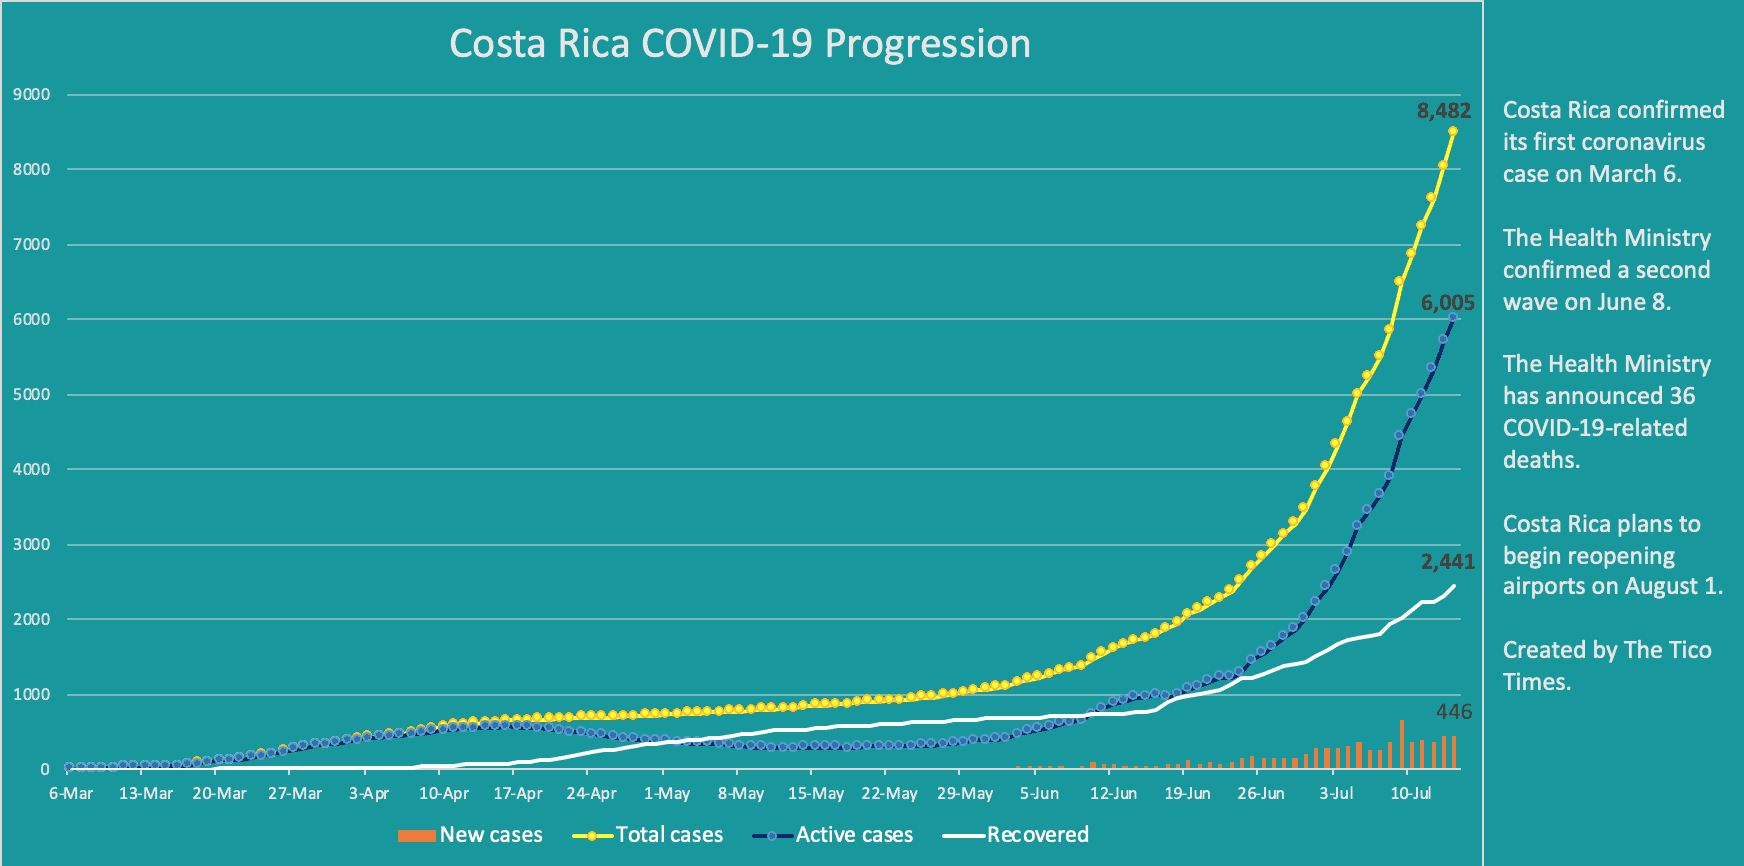 Costa Rica coronavirus data on July 14, 2020